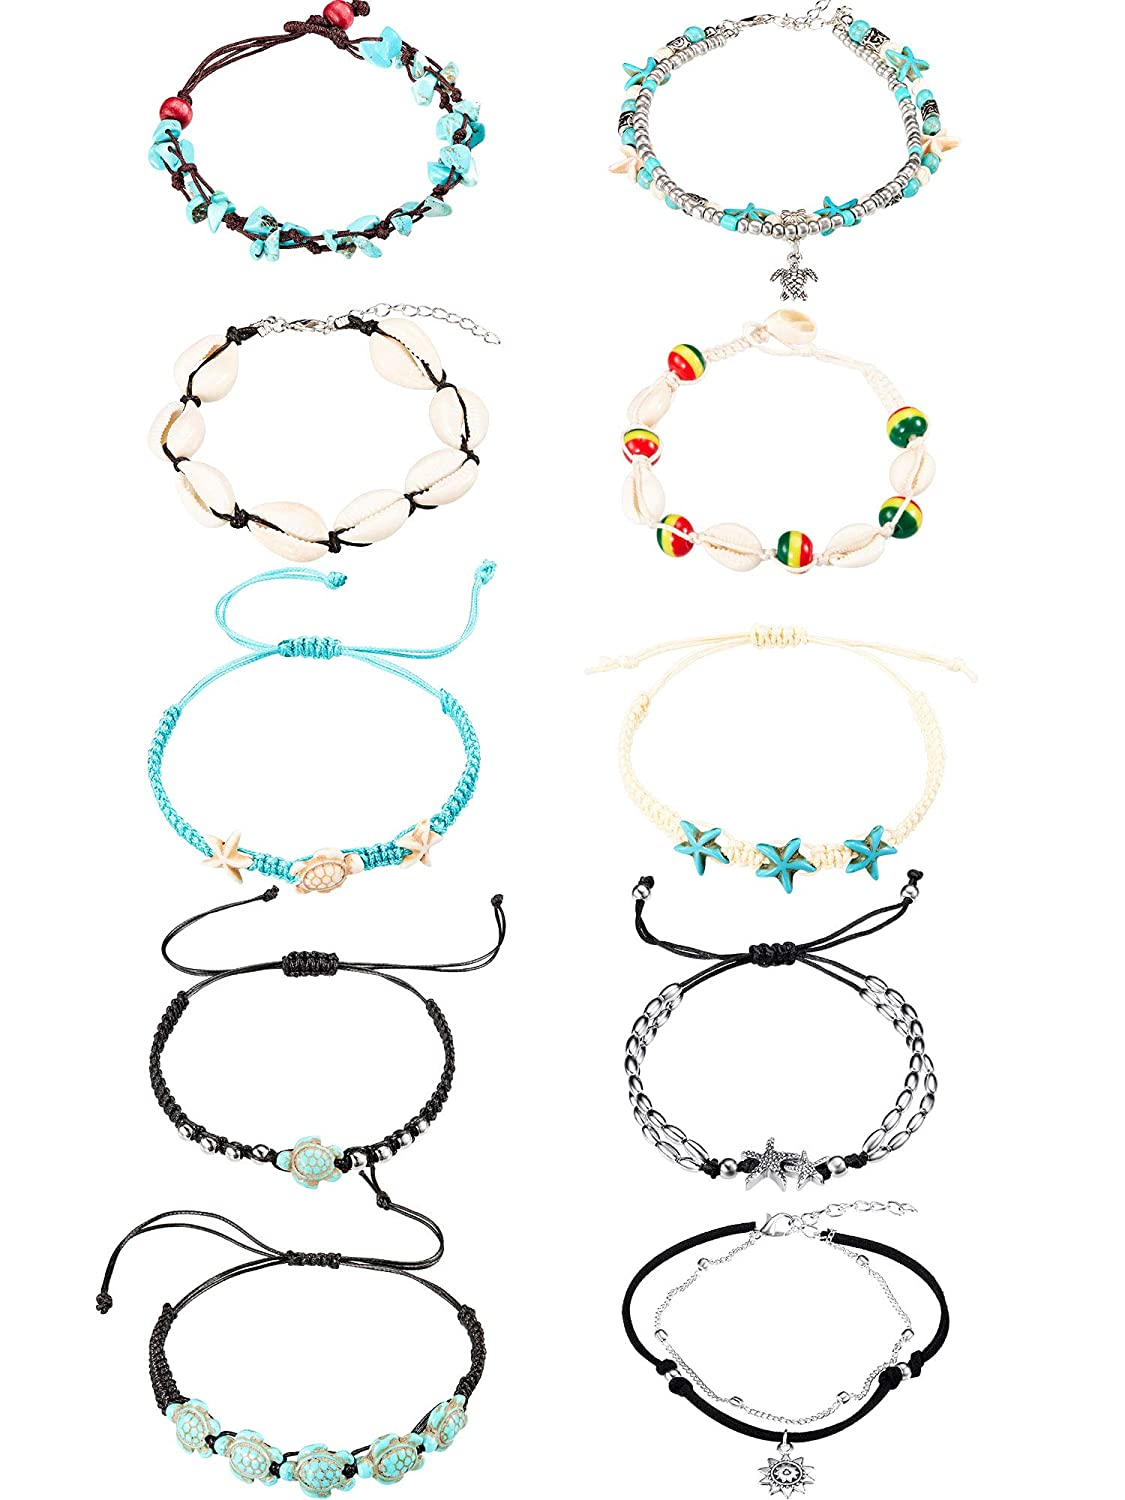 Danigrefinb 3Pcs Bohemia Multiple Layers Turtle Round Pendant Rope Anklets Beach Jewelry Foot Chains Ankle Bracelets